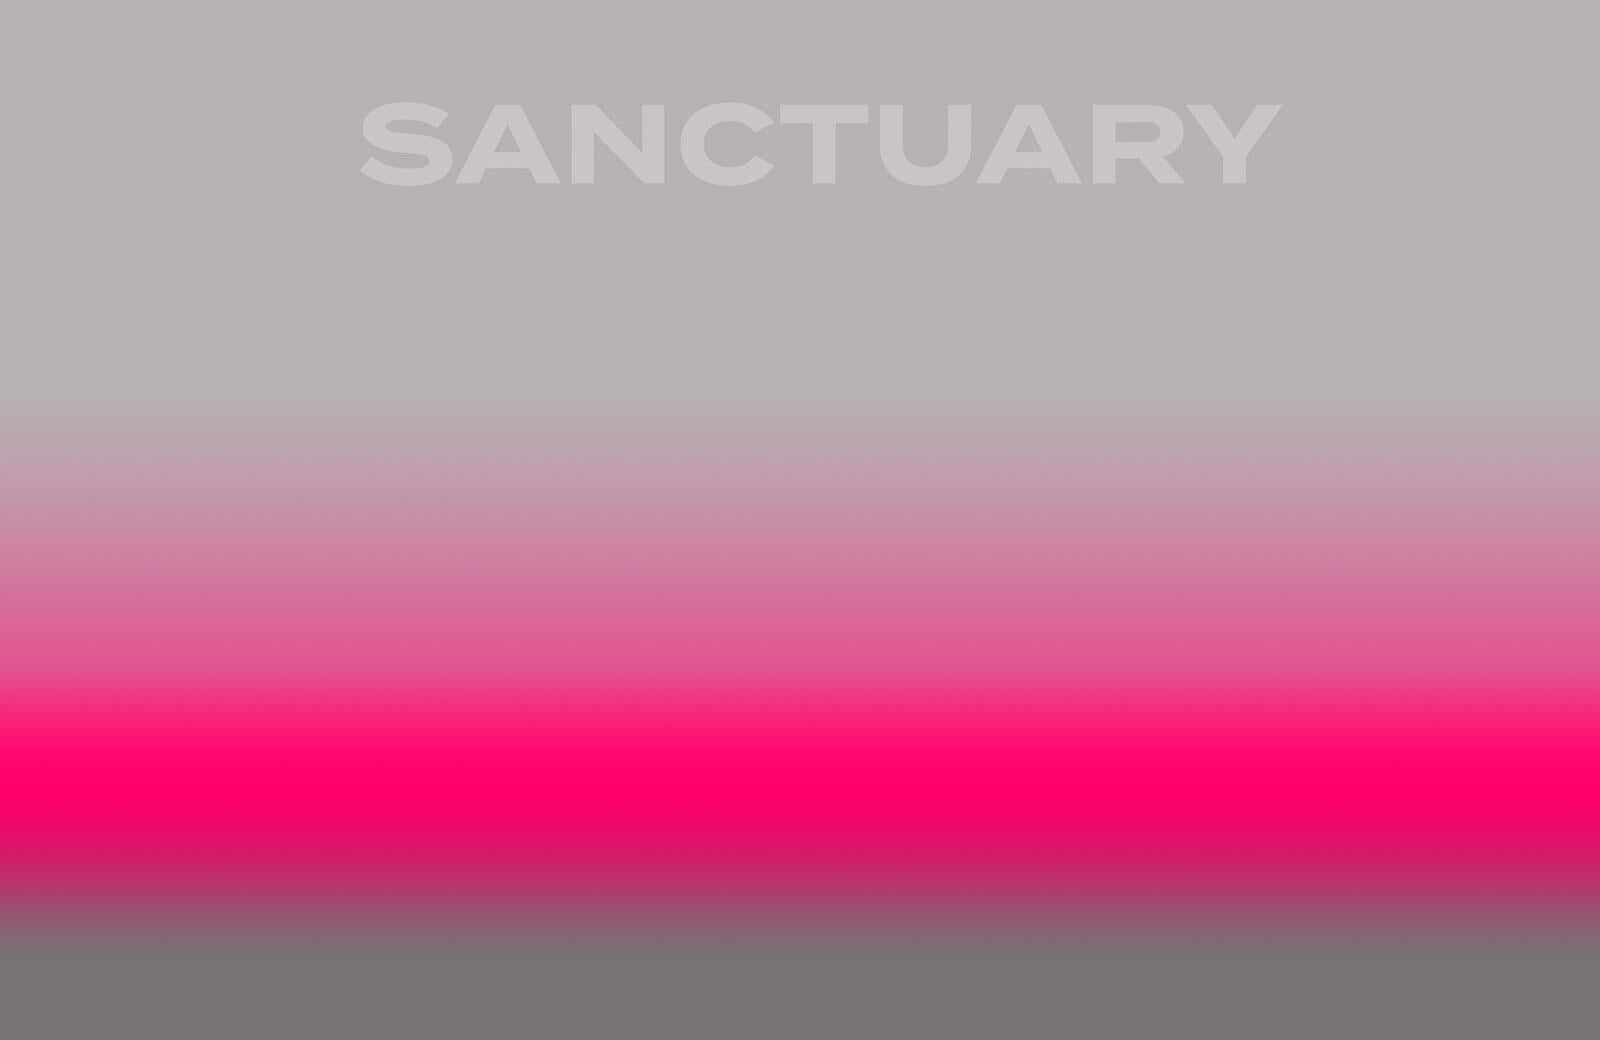 D/Luca Sanctuary Shades of Pink and Grey - Artwork